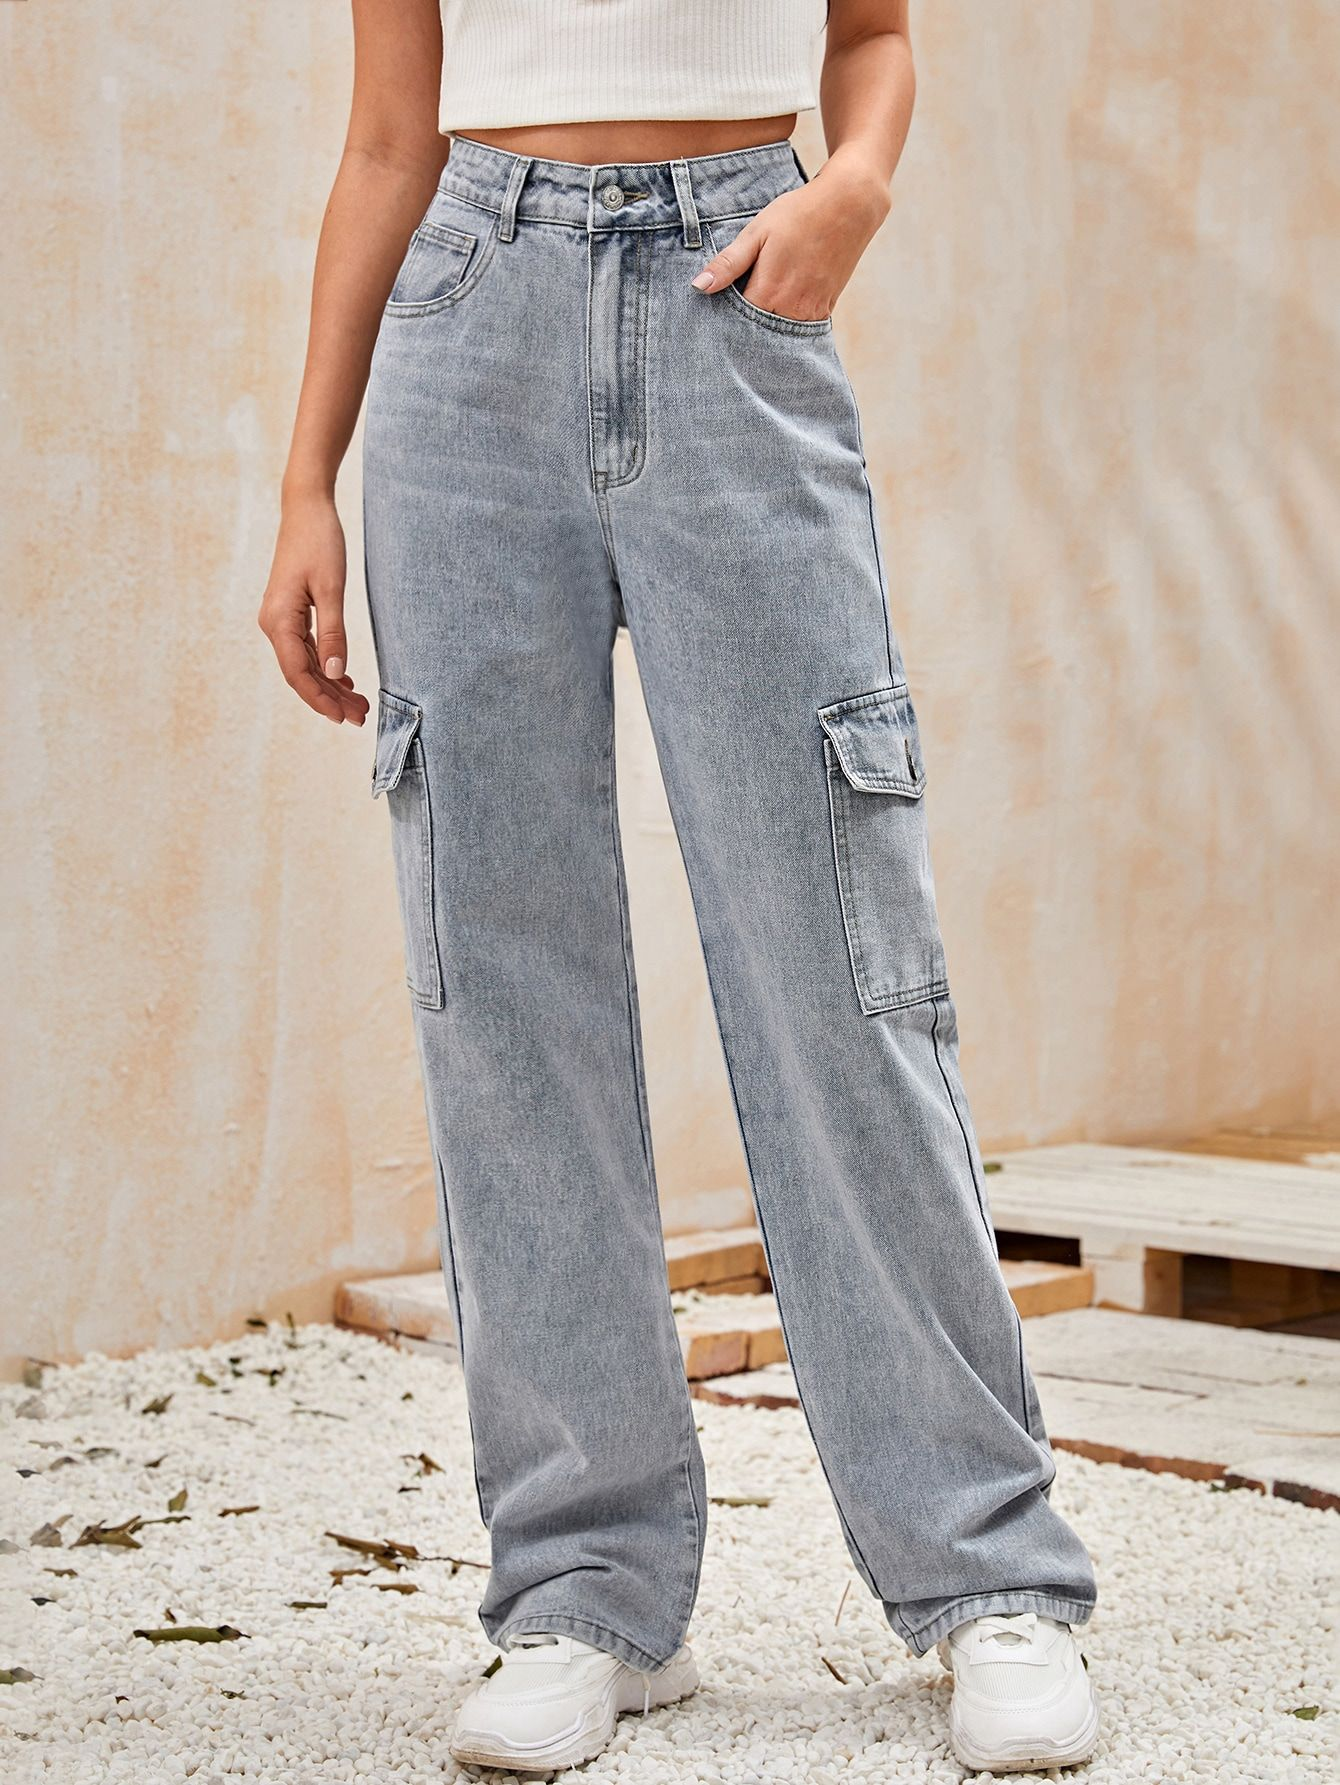 Black Friday 2020 High Waisted Flap Pocket Side Baggy Jeans Shein Usa In 2020 Baggy Jeans Cargo Jeans Shein Outfits